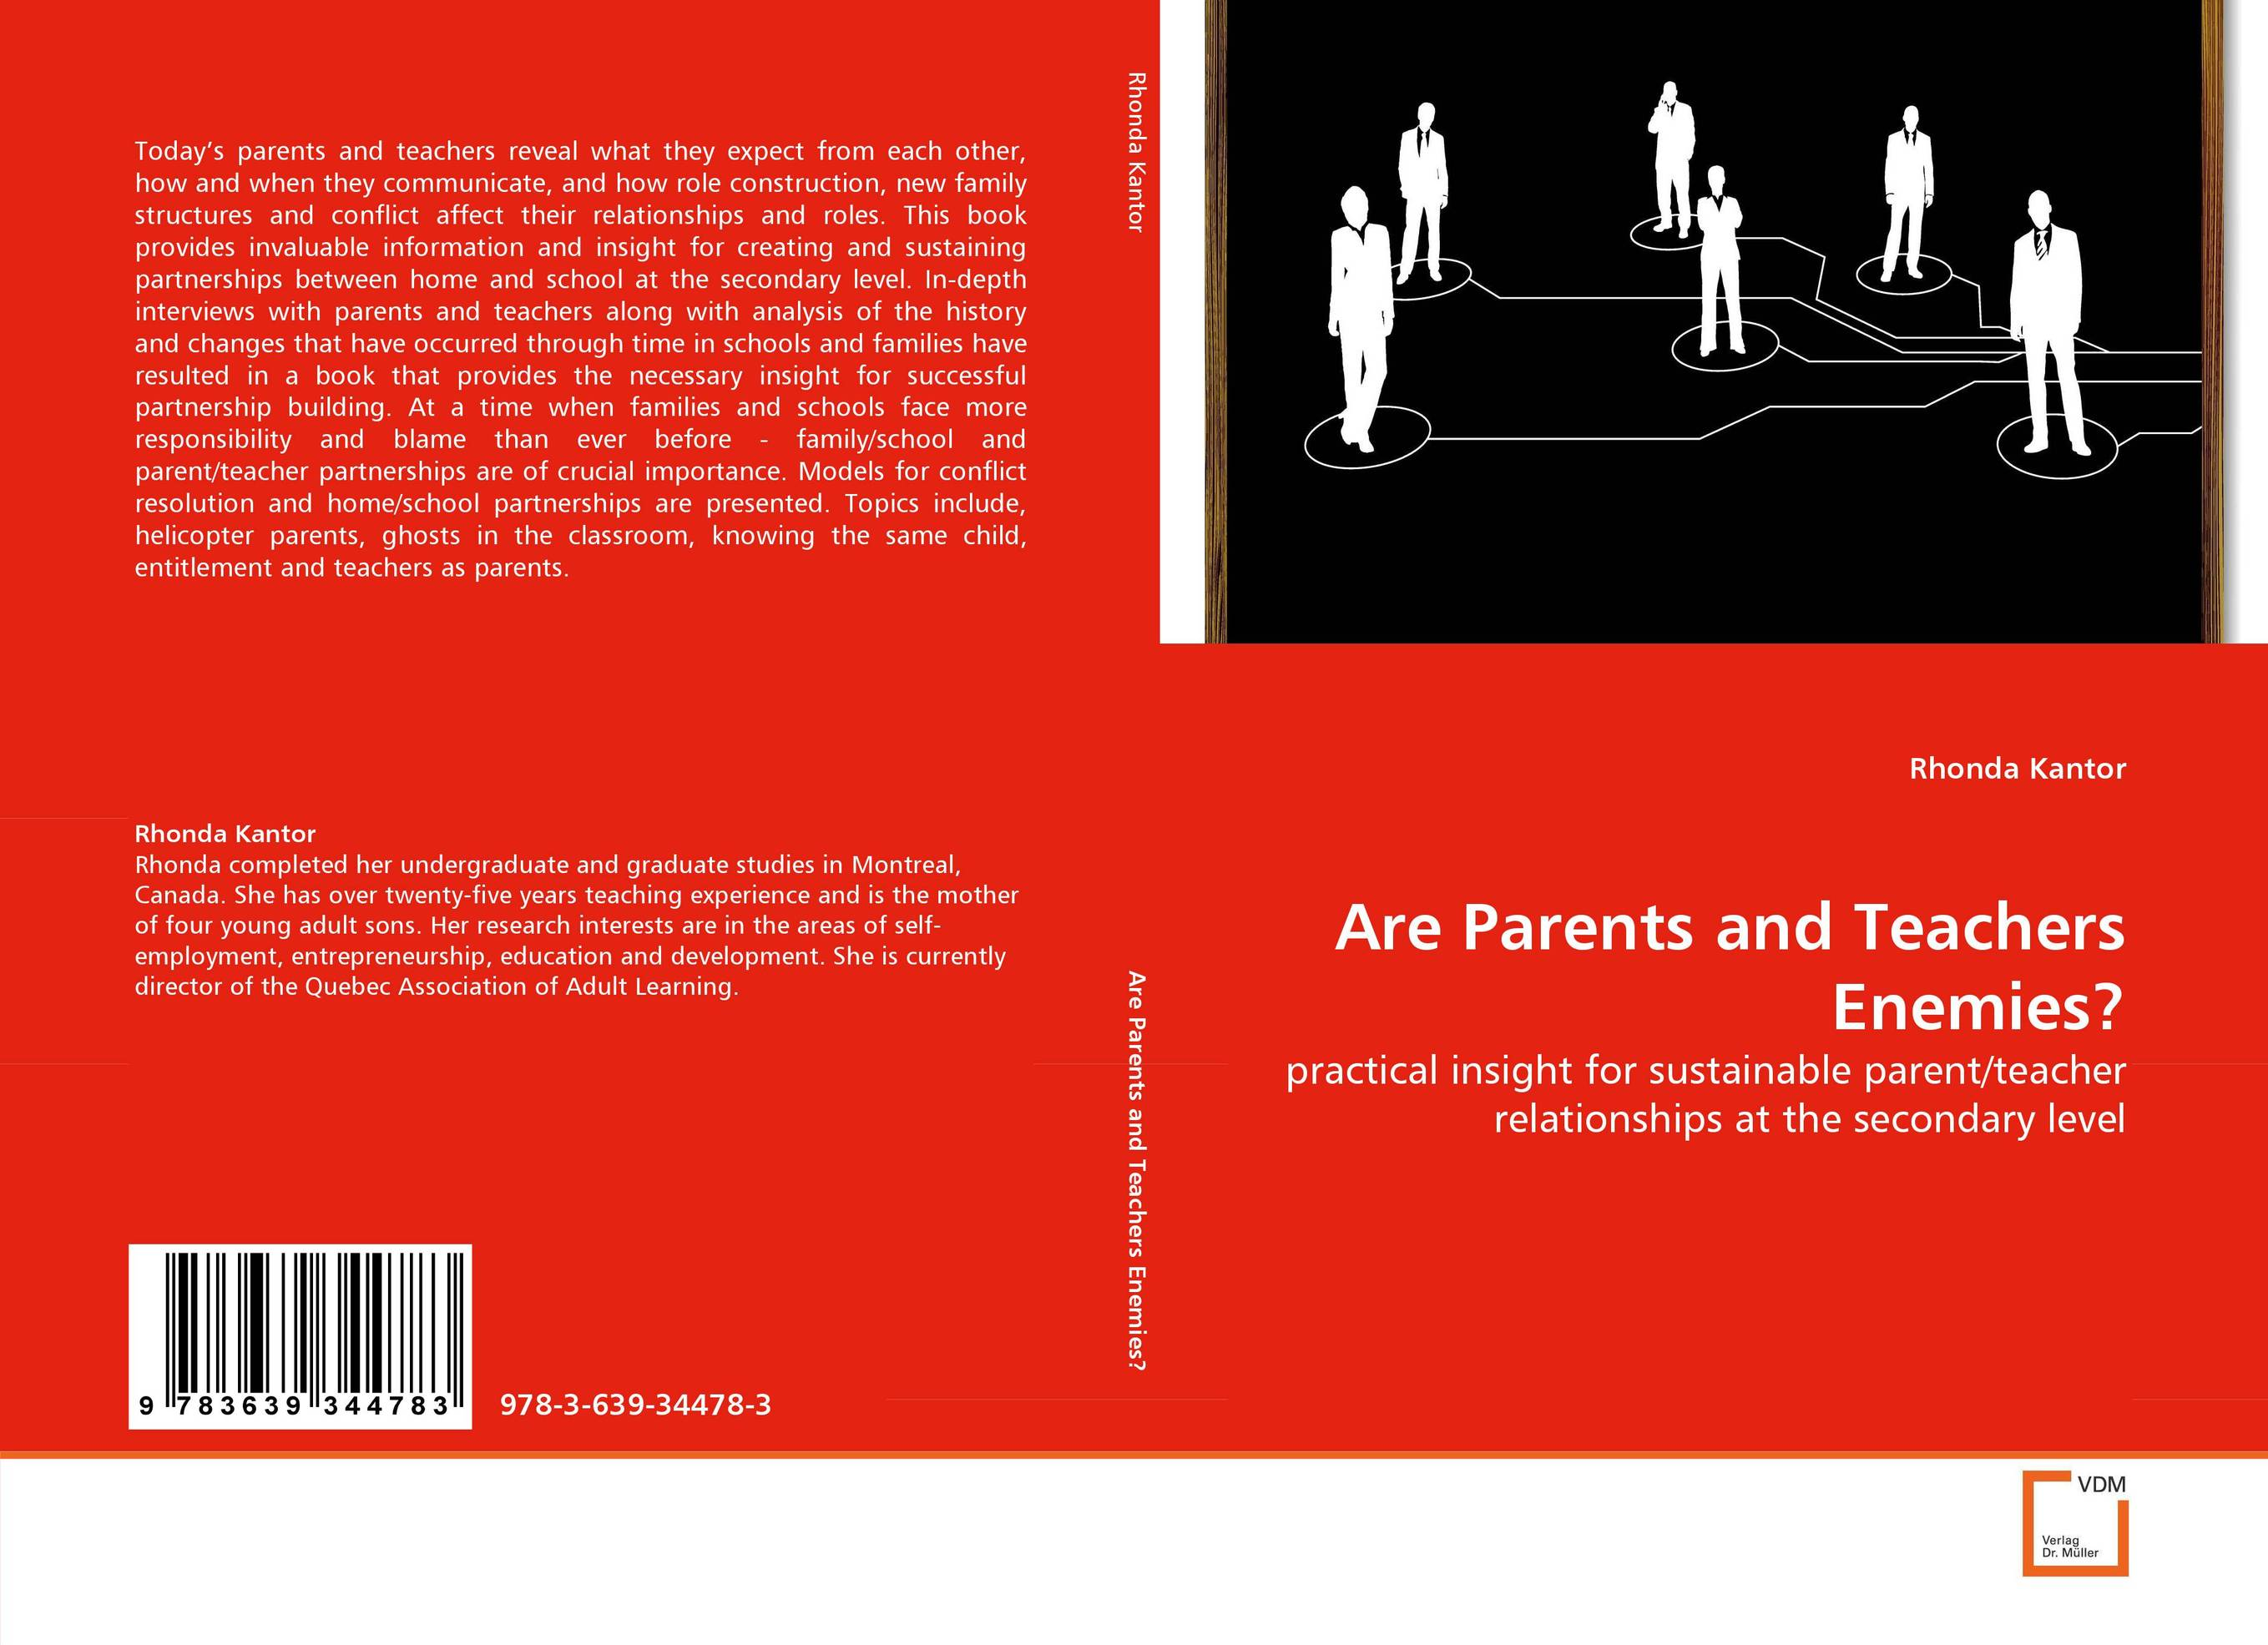 Are Parents and Teachers Enemies?